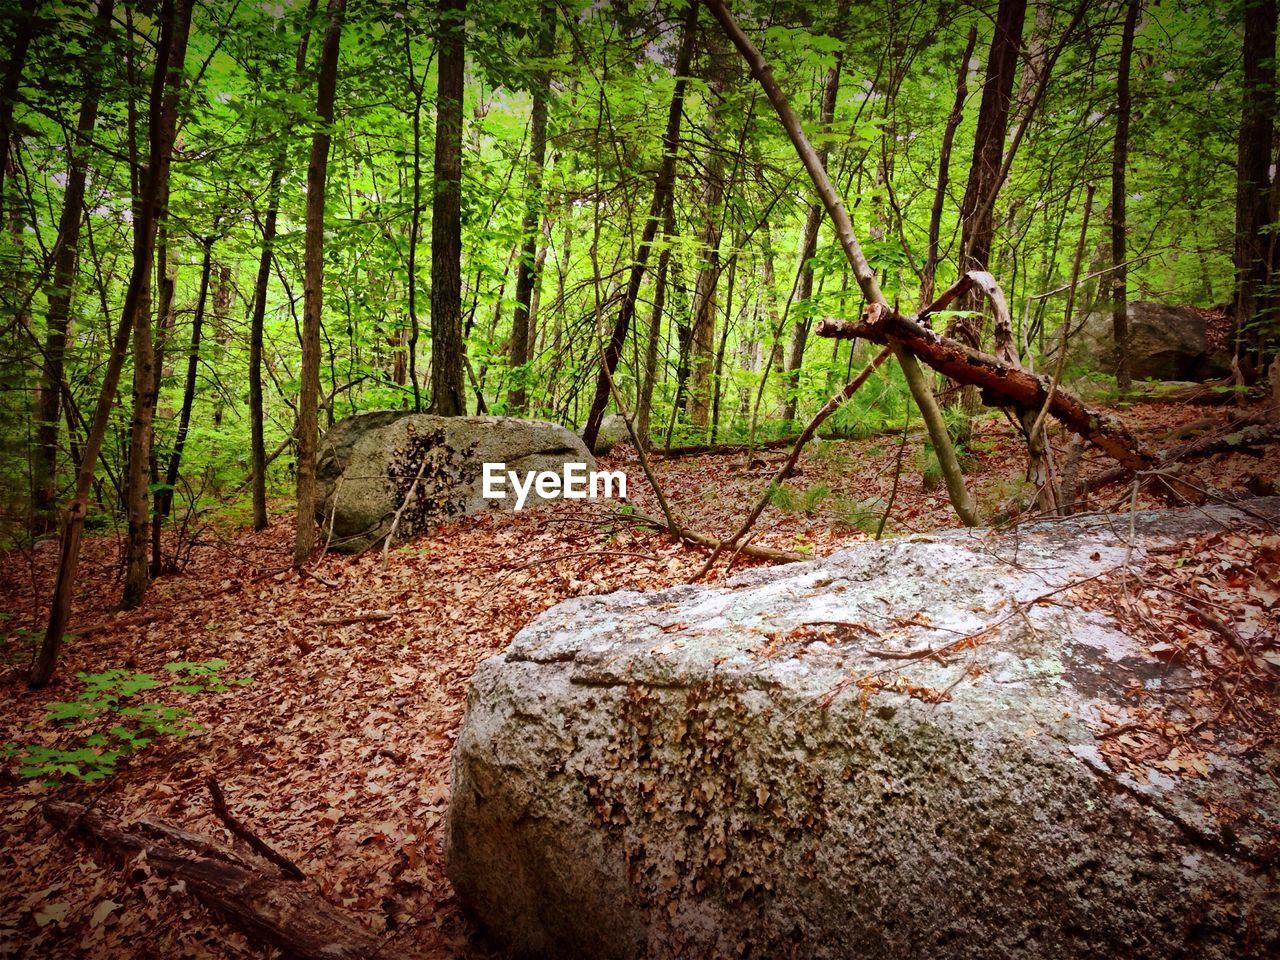 forest, nature, tree, tree trunk, no people, outdoors, day